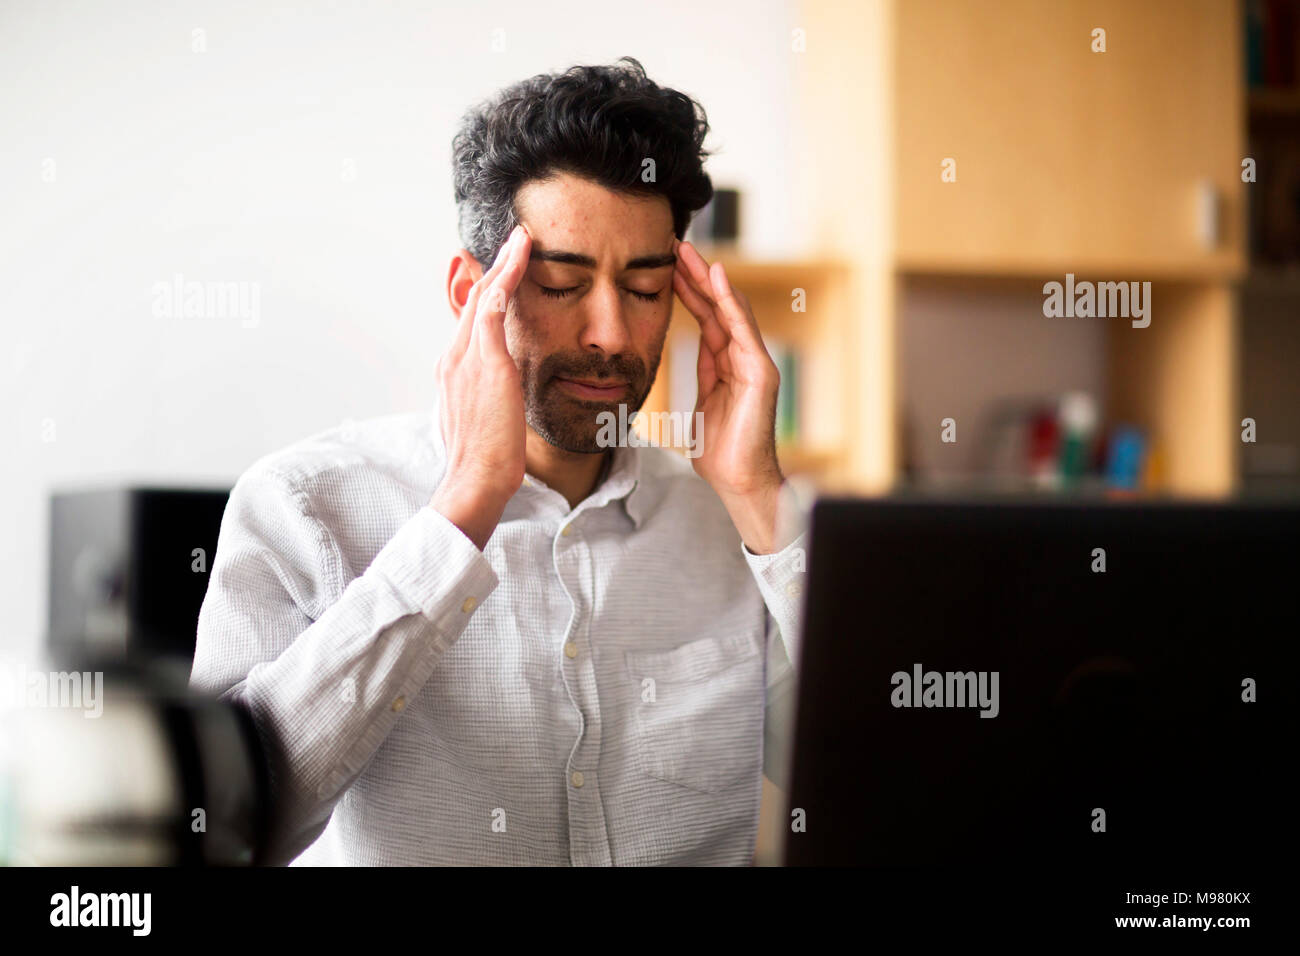 Portrait of businessman with hands on his temples at desk in office - Stock Image